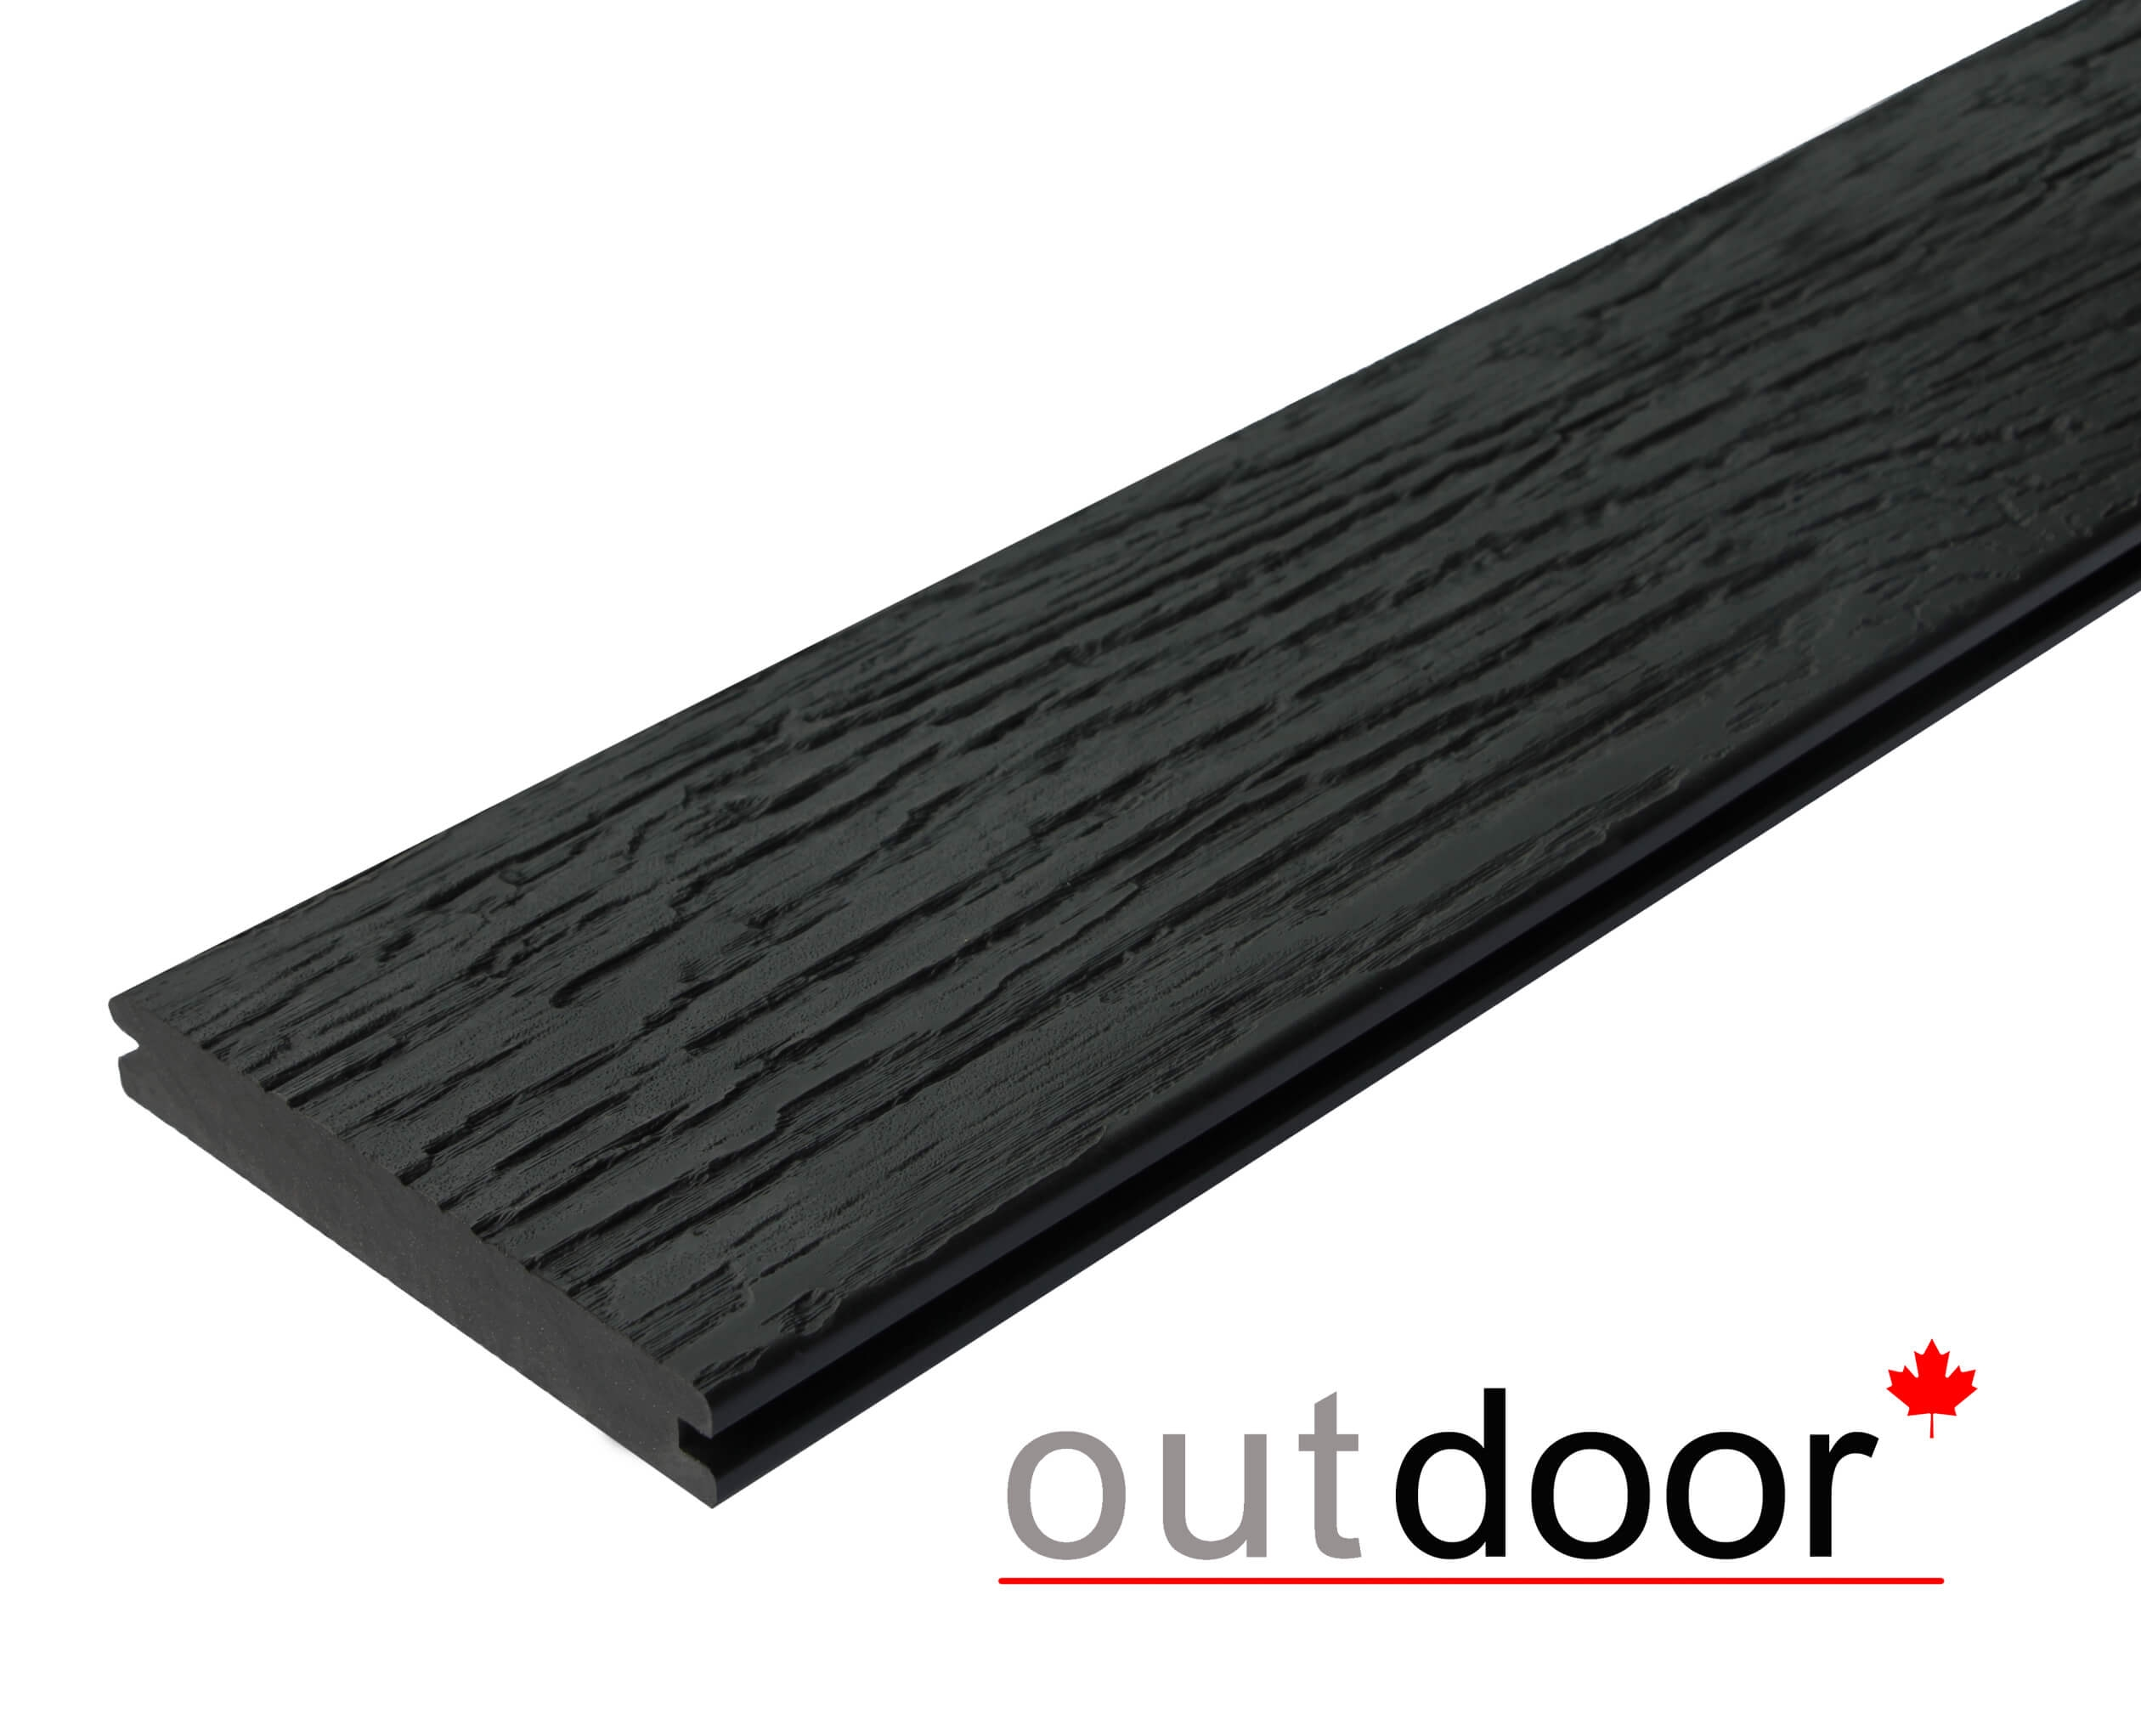 Outdoor 3D STORM BLACK